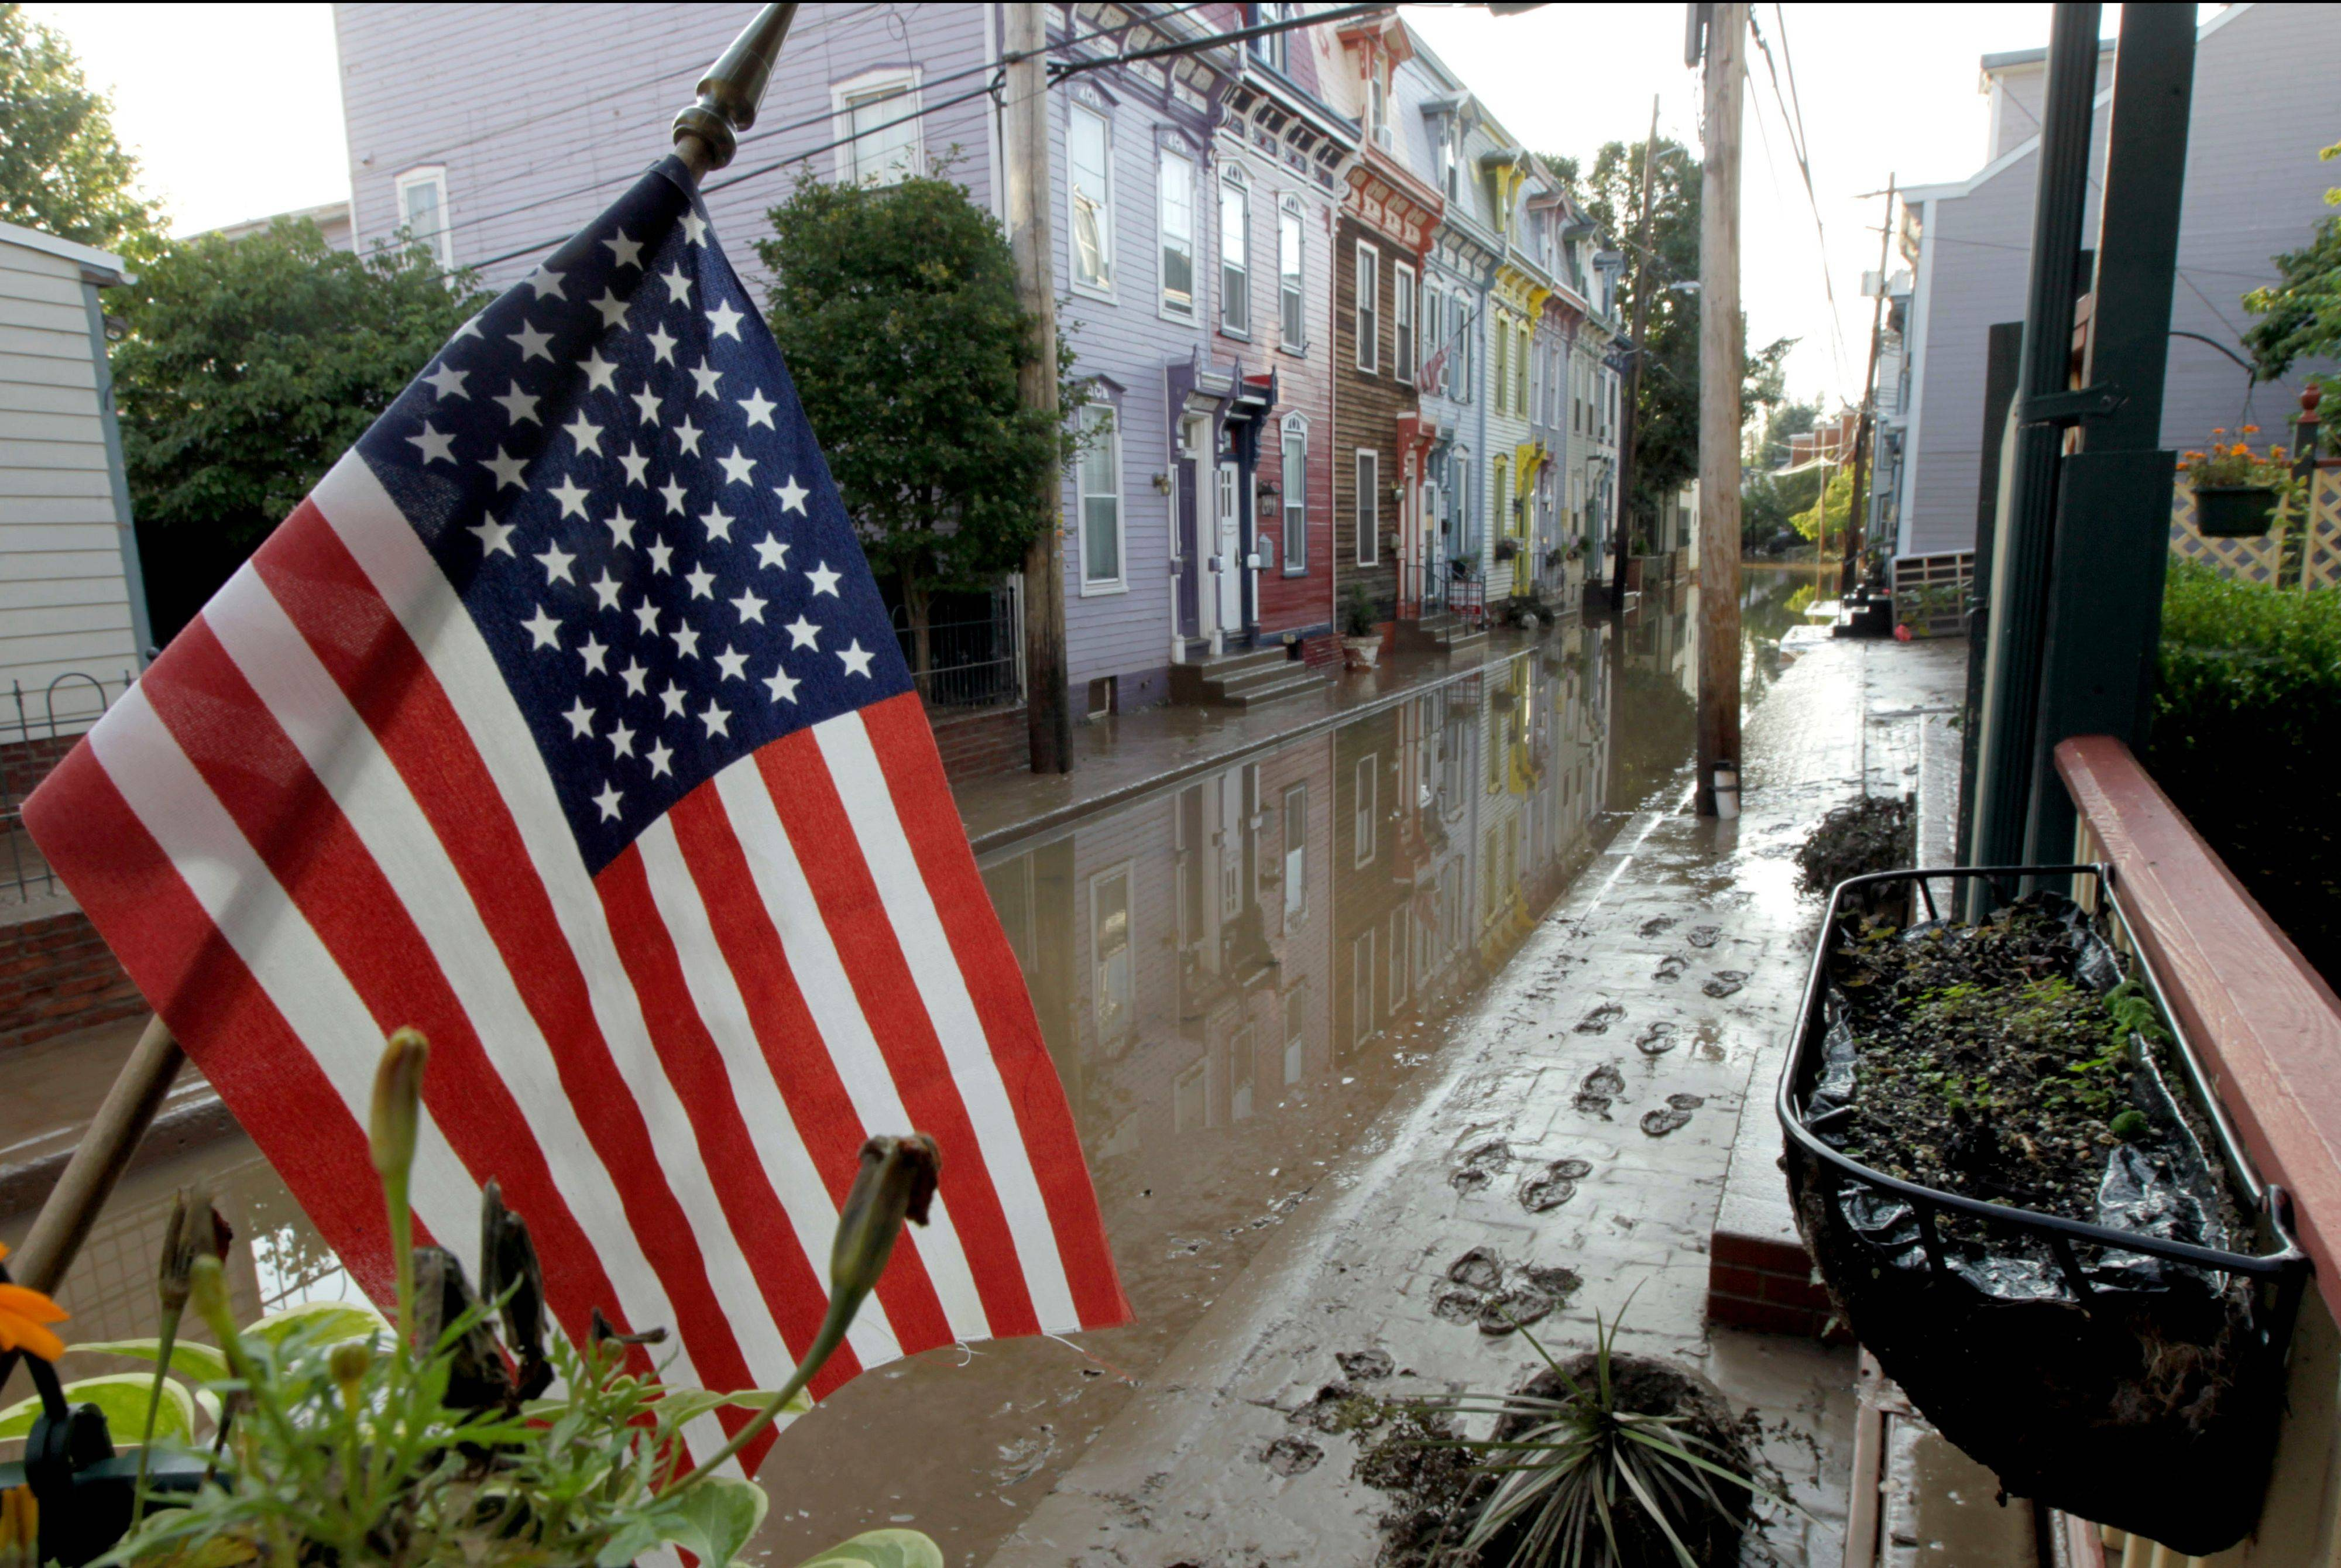 An American flag still flies in the Shipoke area in Harrisburg, Pa., Saturday after flooding caused by the remnants of Tropical Storm Lee